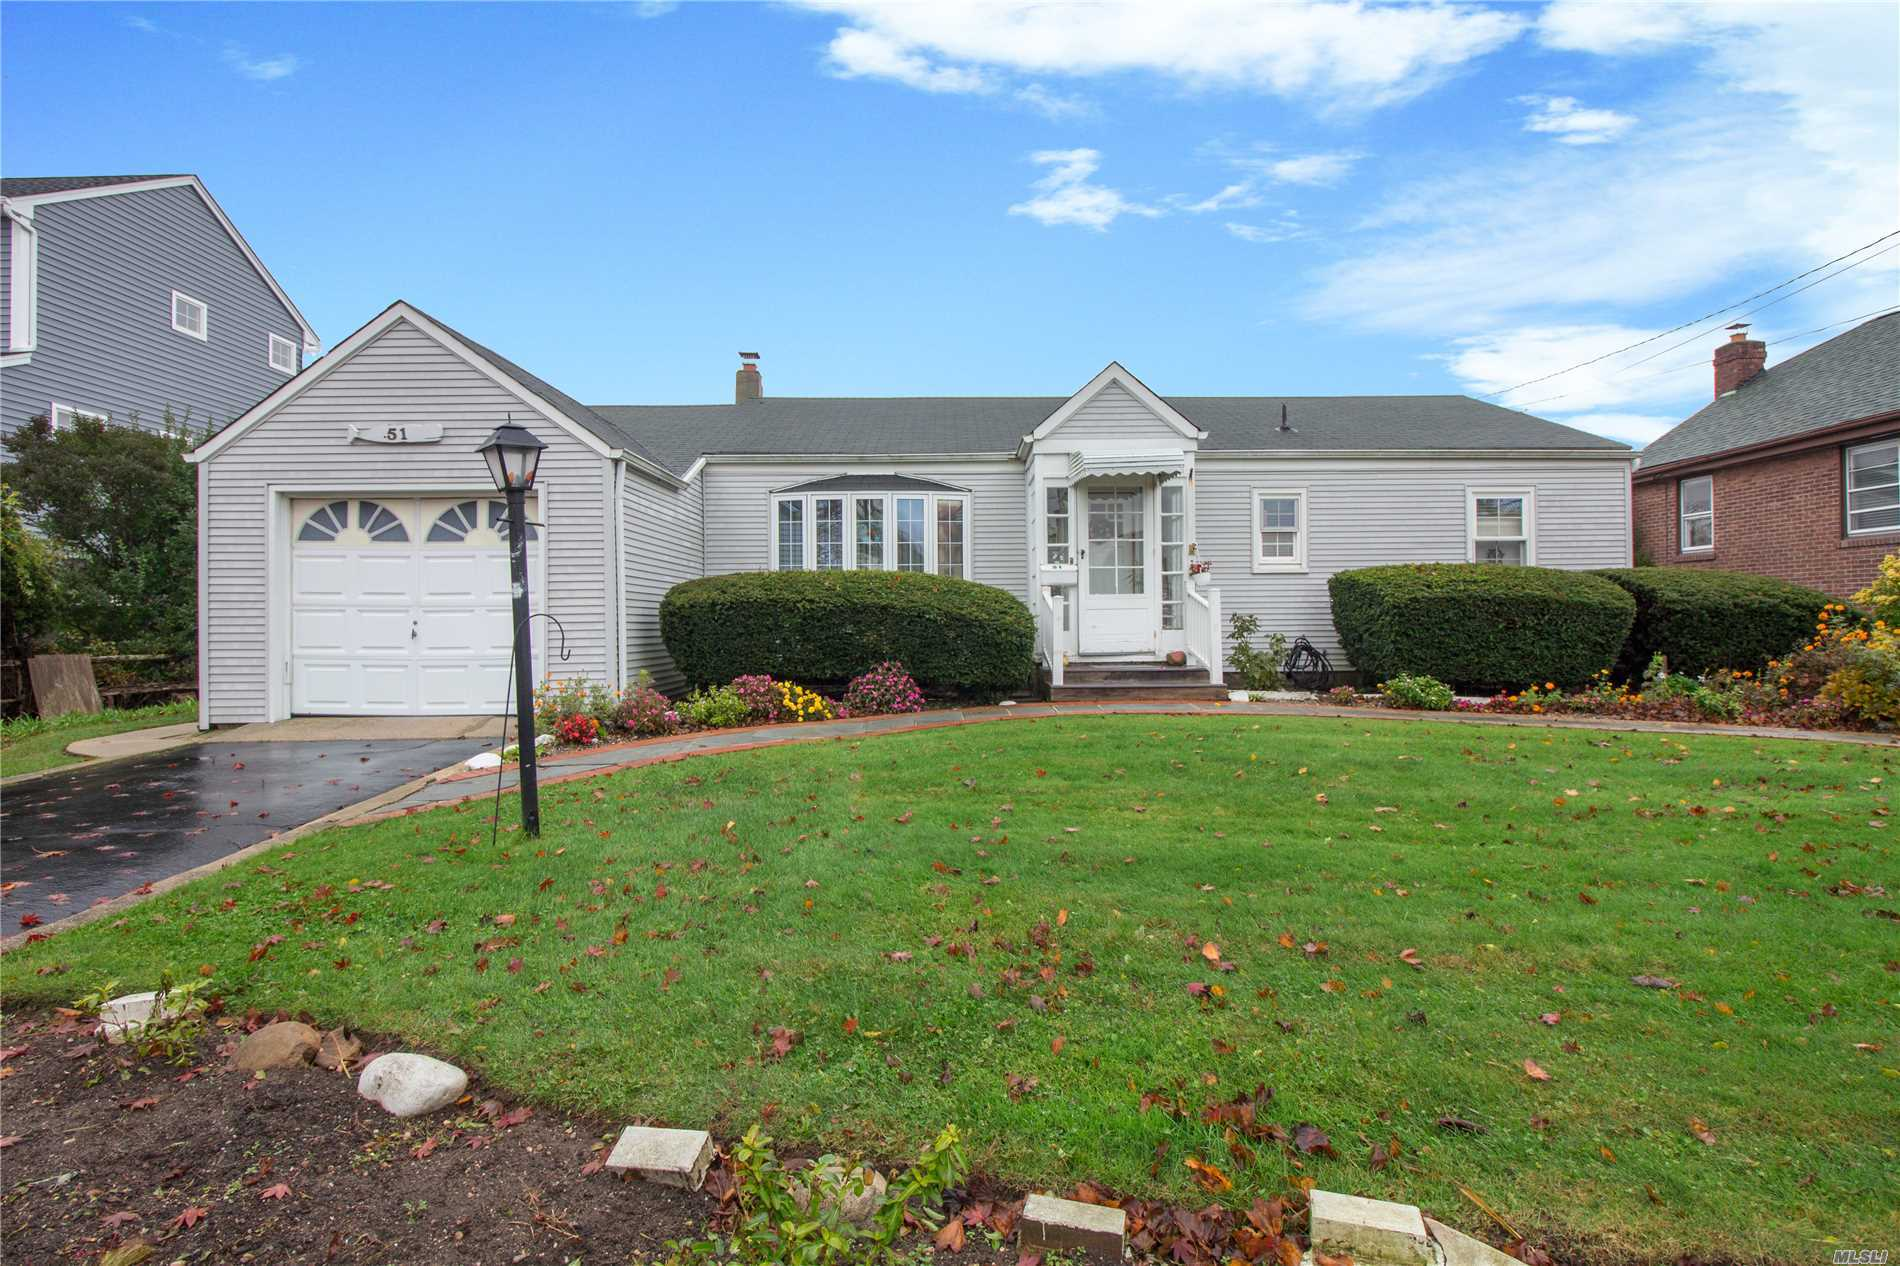 Spacious Ranch On Wide Canal In Babylon Village! This Sun Soaked Ranch Is Situated On A 75X135 Lot With 75' Of Bulkhead. The Home Boasts A Master Suite With Full Bathroom As Well As A Second Bedroom, Add'l Full Bathroom, Hardwood Floors, New Burner & Hw Heater & Much More! Don't Wait, This One Won't Last!